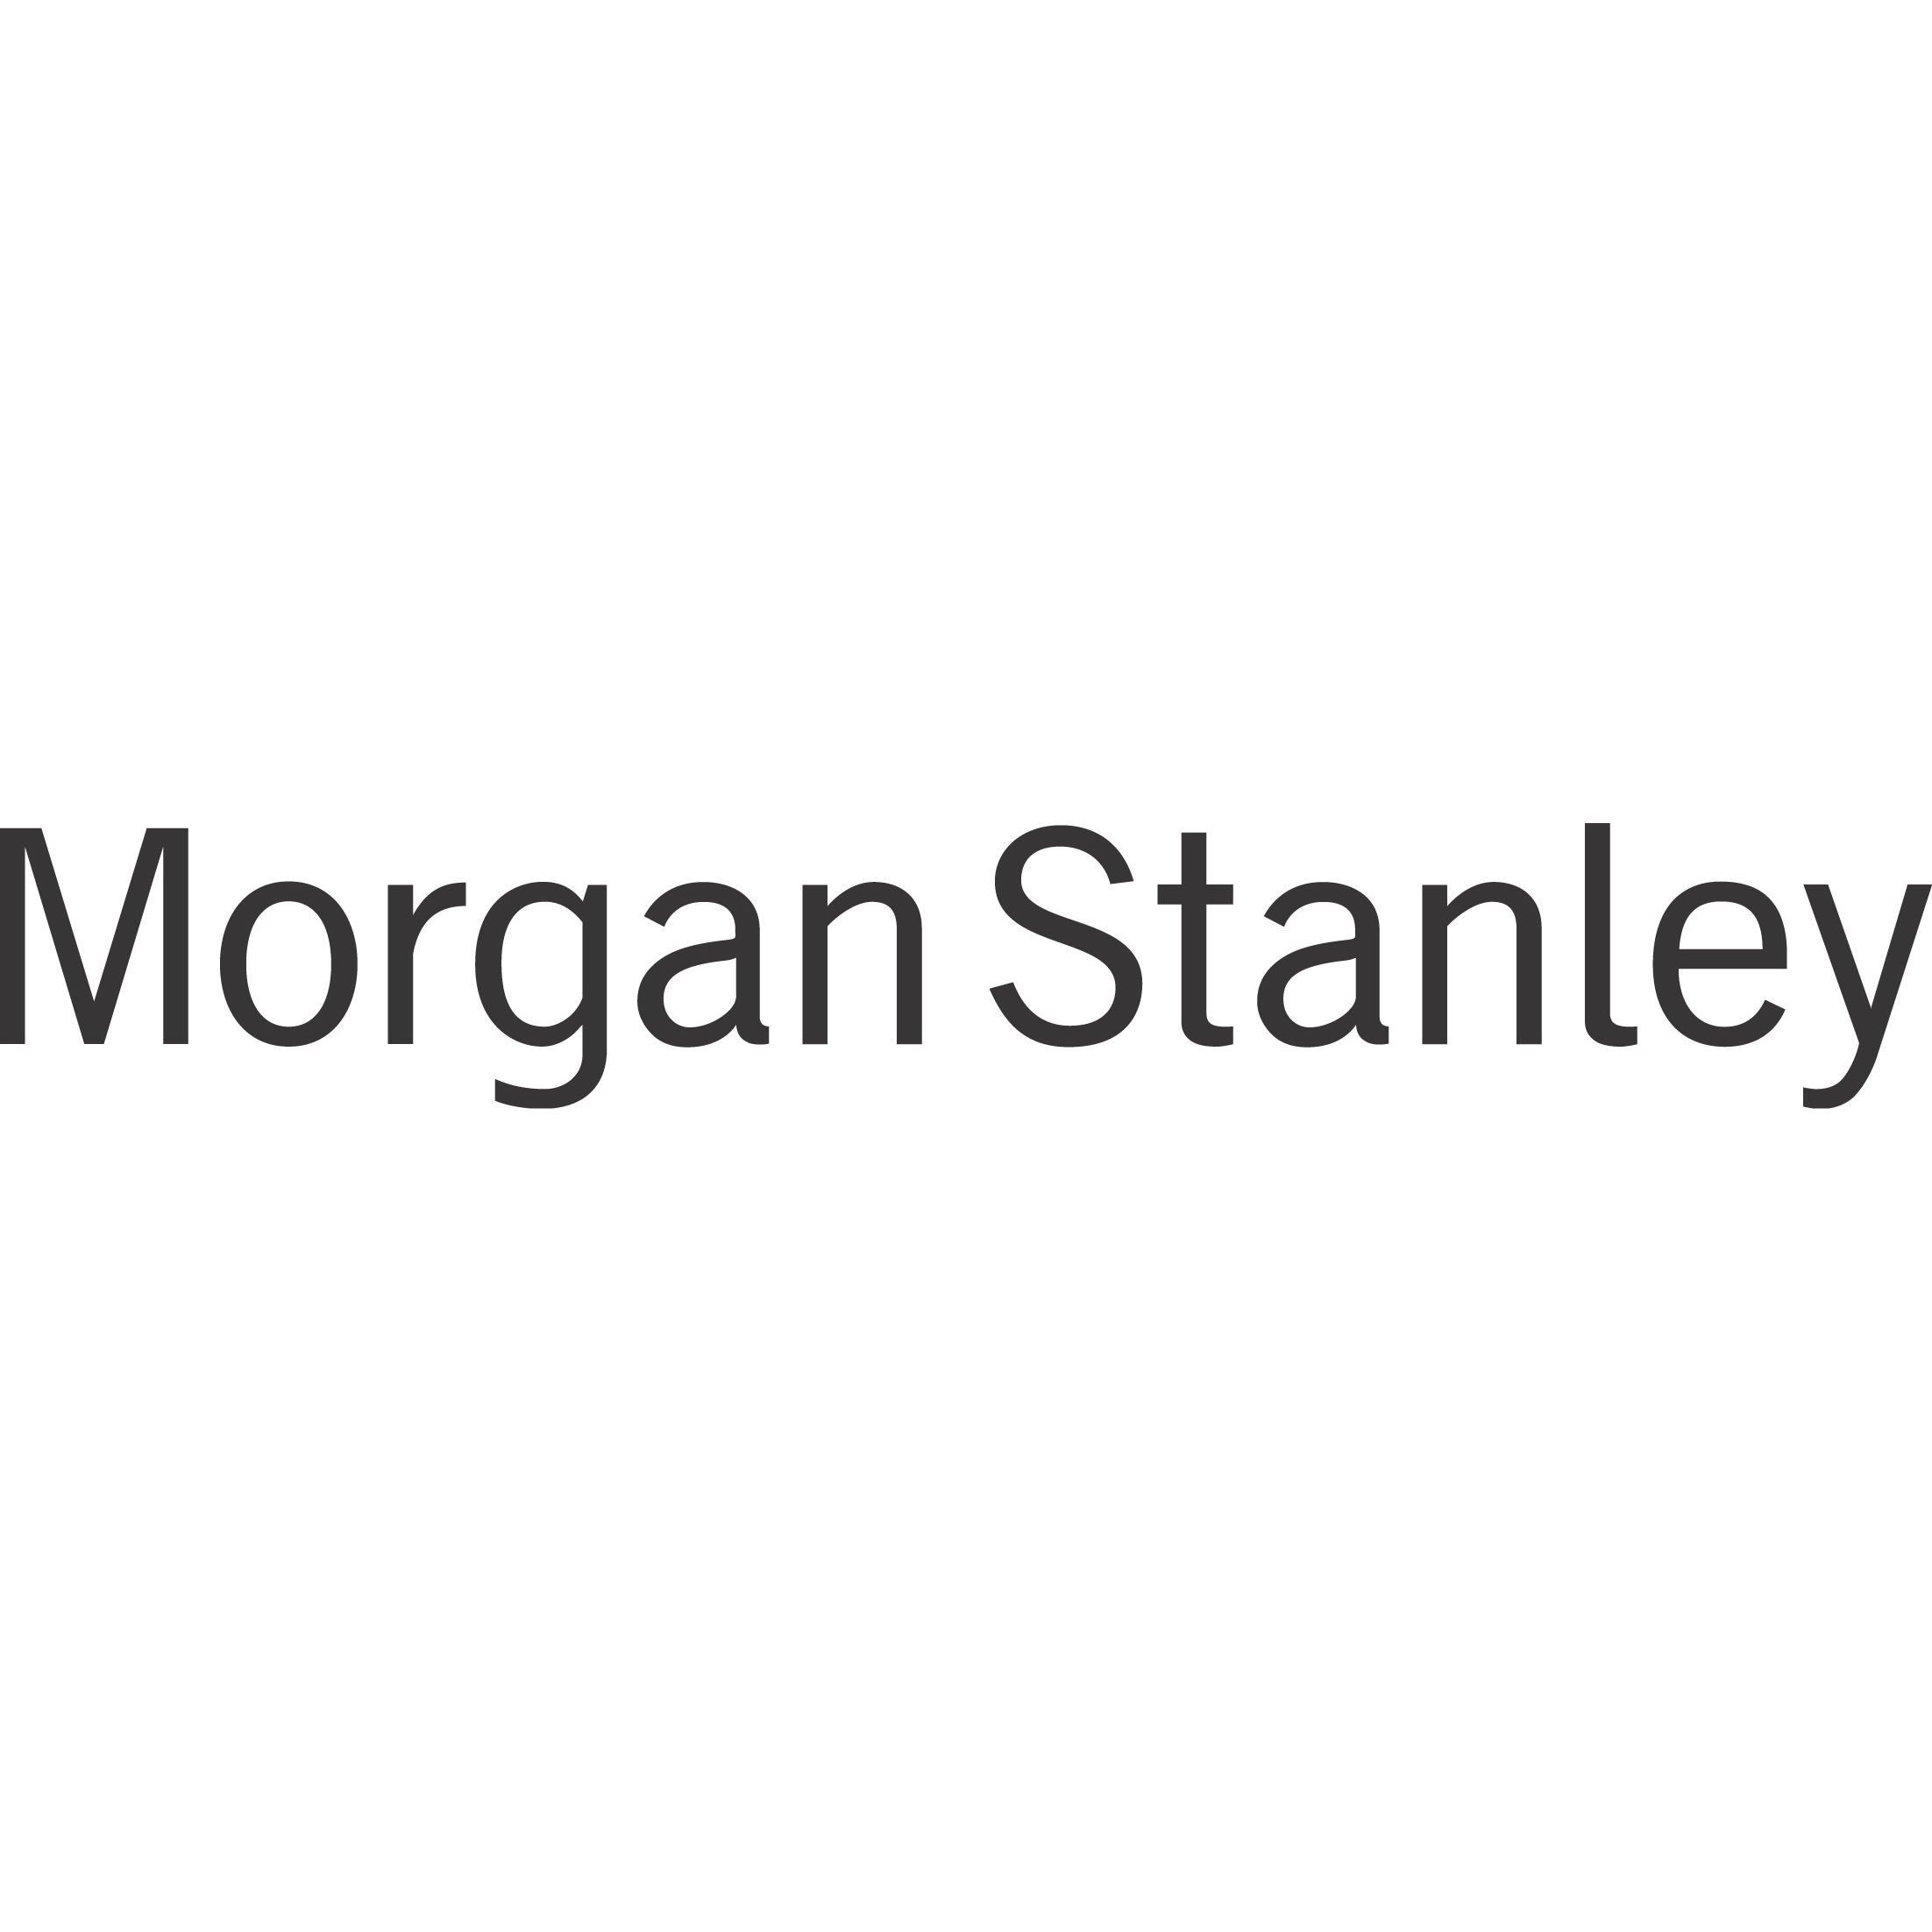 Brian Penzel - Morgan Stanley | Financial Advisor in Palo Alto,California